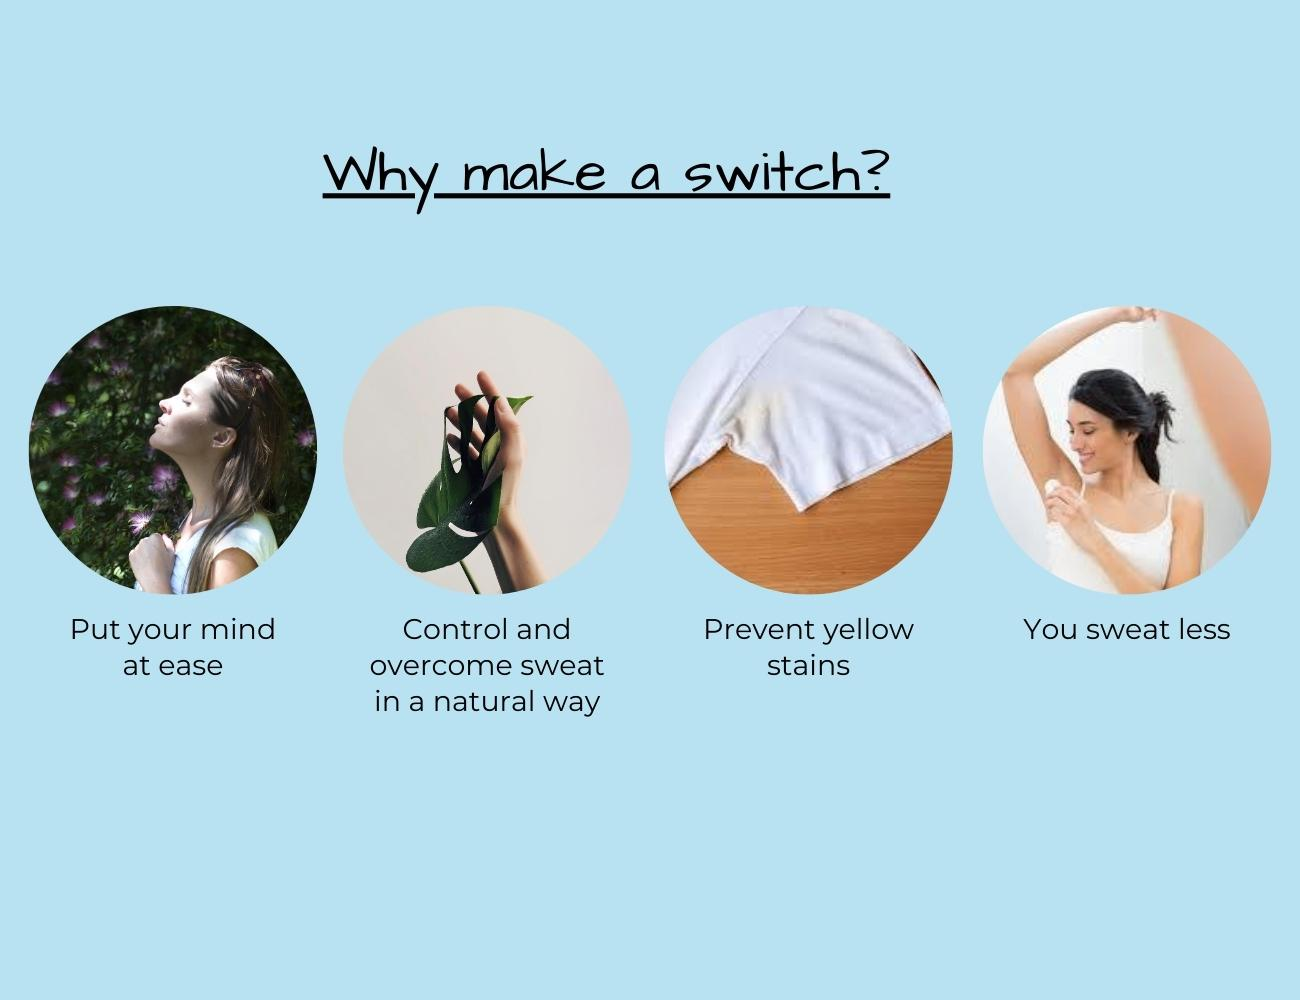 This is an image showing many reasons to make the switch from Aluminium Deodorant to Natural Aluminium free Deodorant.